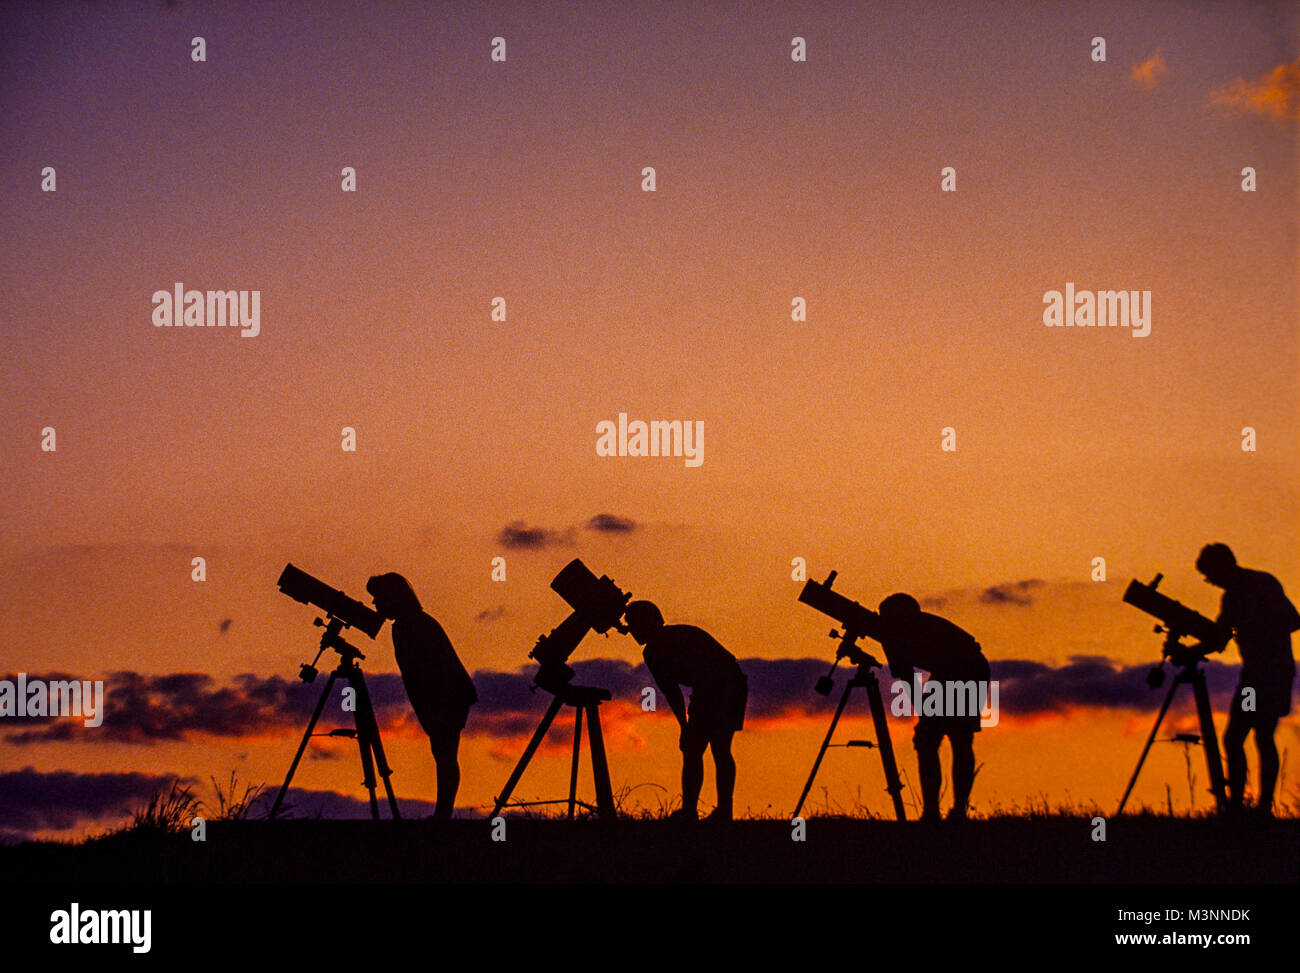 Nothing tell pictures of amateur astronomers phrase, simply